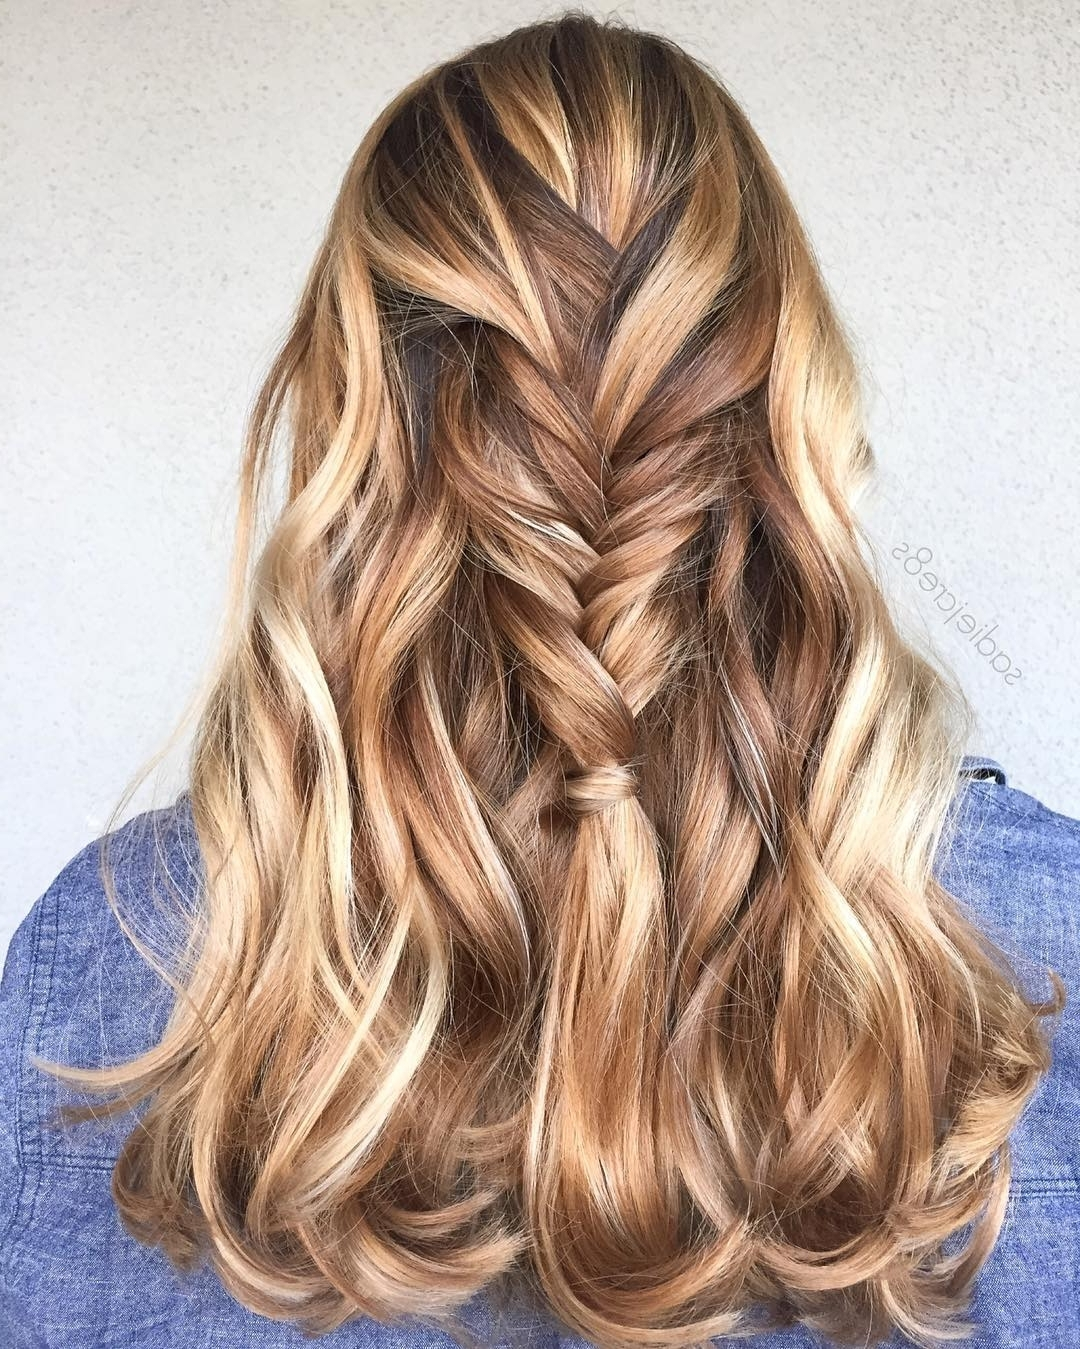 13 Beautiful Brown Hair With Blonde Highlights And Lowlights For Most Current Light Copper Hairstyles With Blonde Babylights (View 1 of 20)